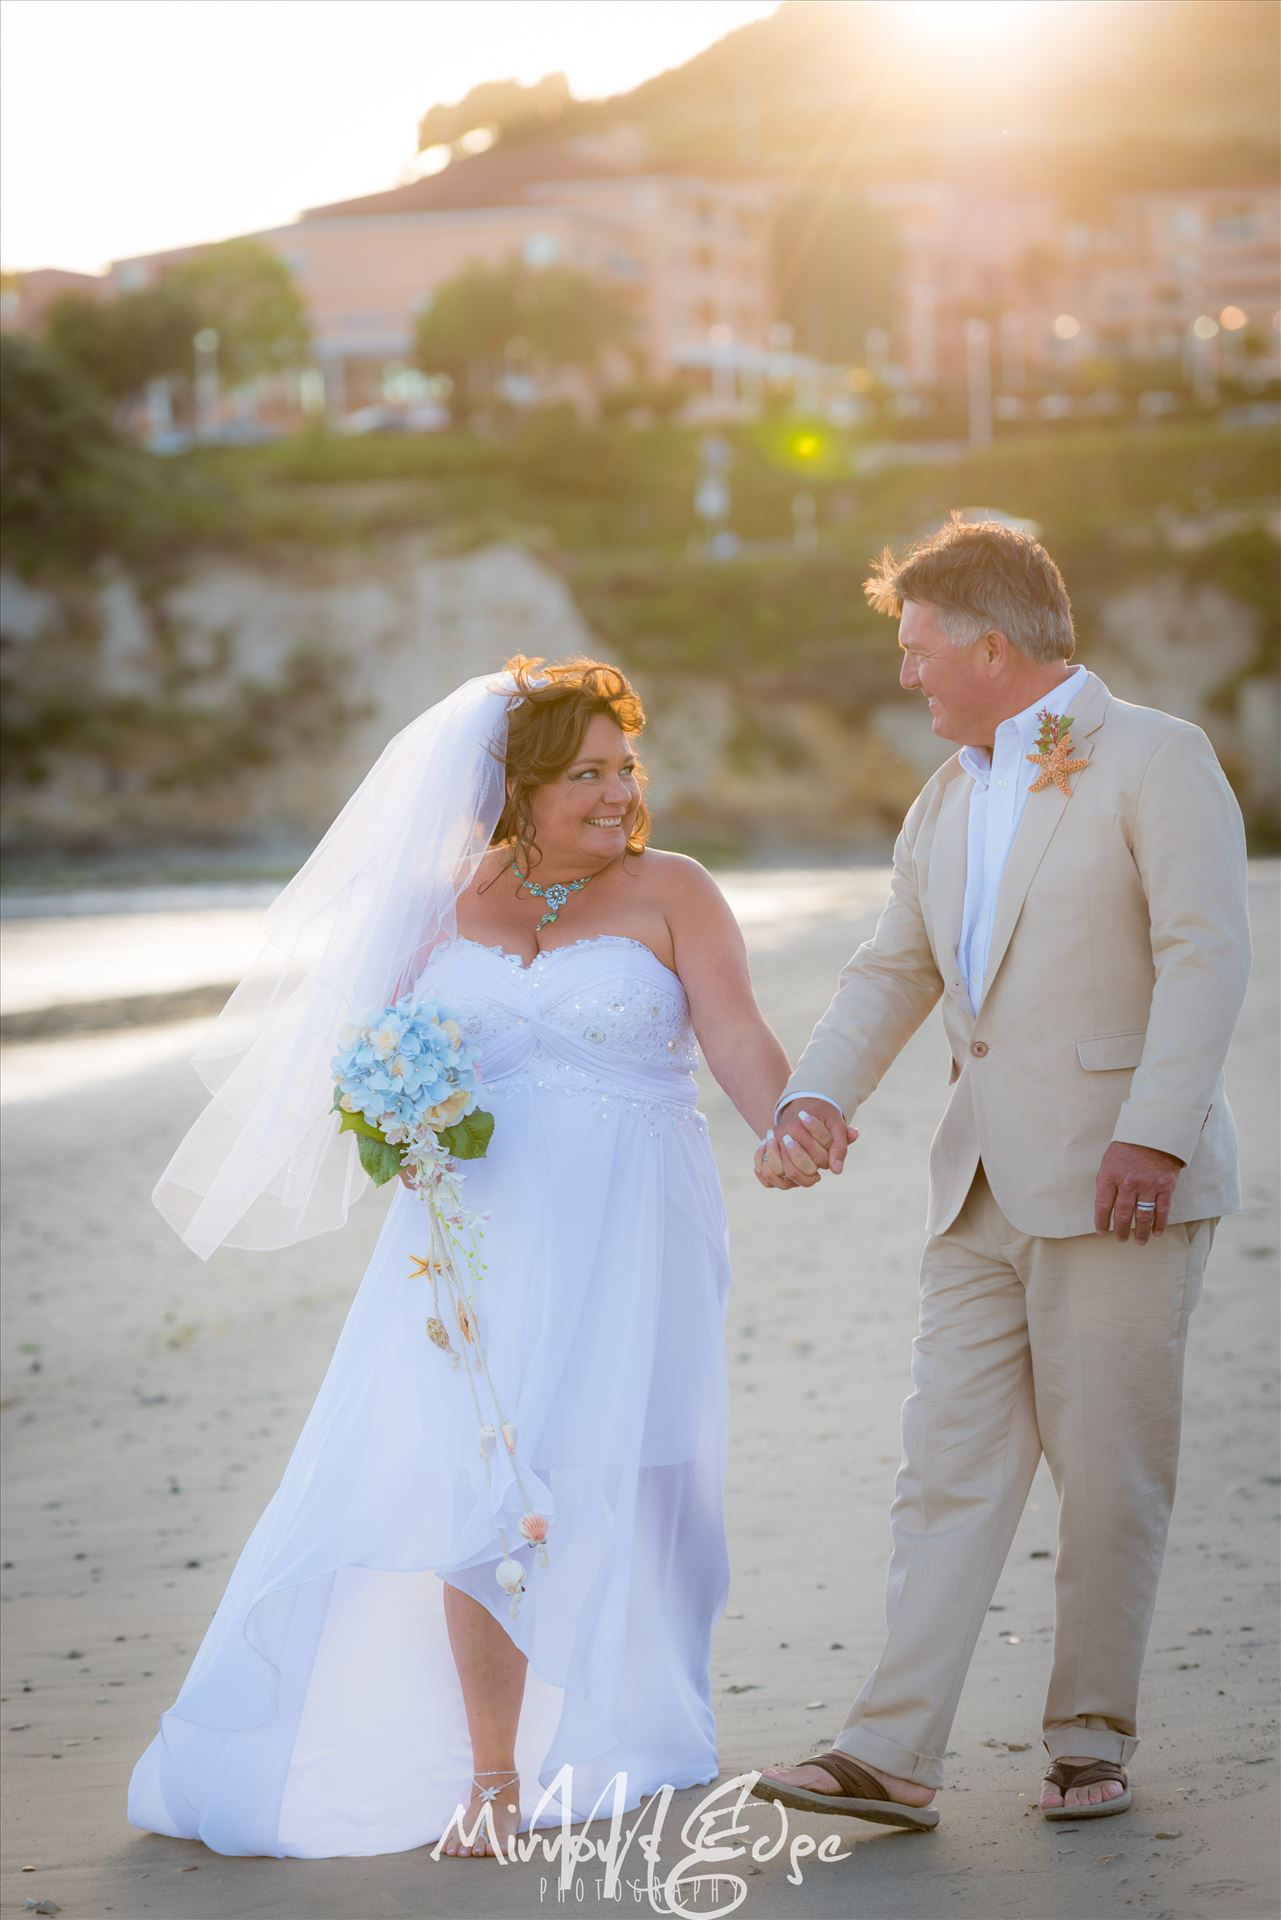 Port-7697.JPG Beautiful and sweet wedding photography by the sea.  Ocean front ceremony at the Avila Lighthouse Suites on Avila Beach, California by Sarah Williams